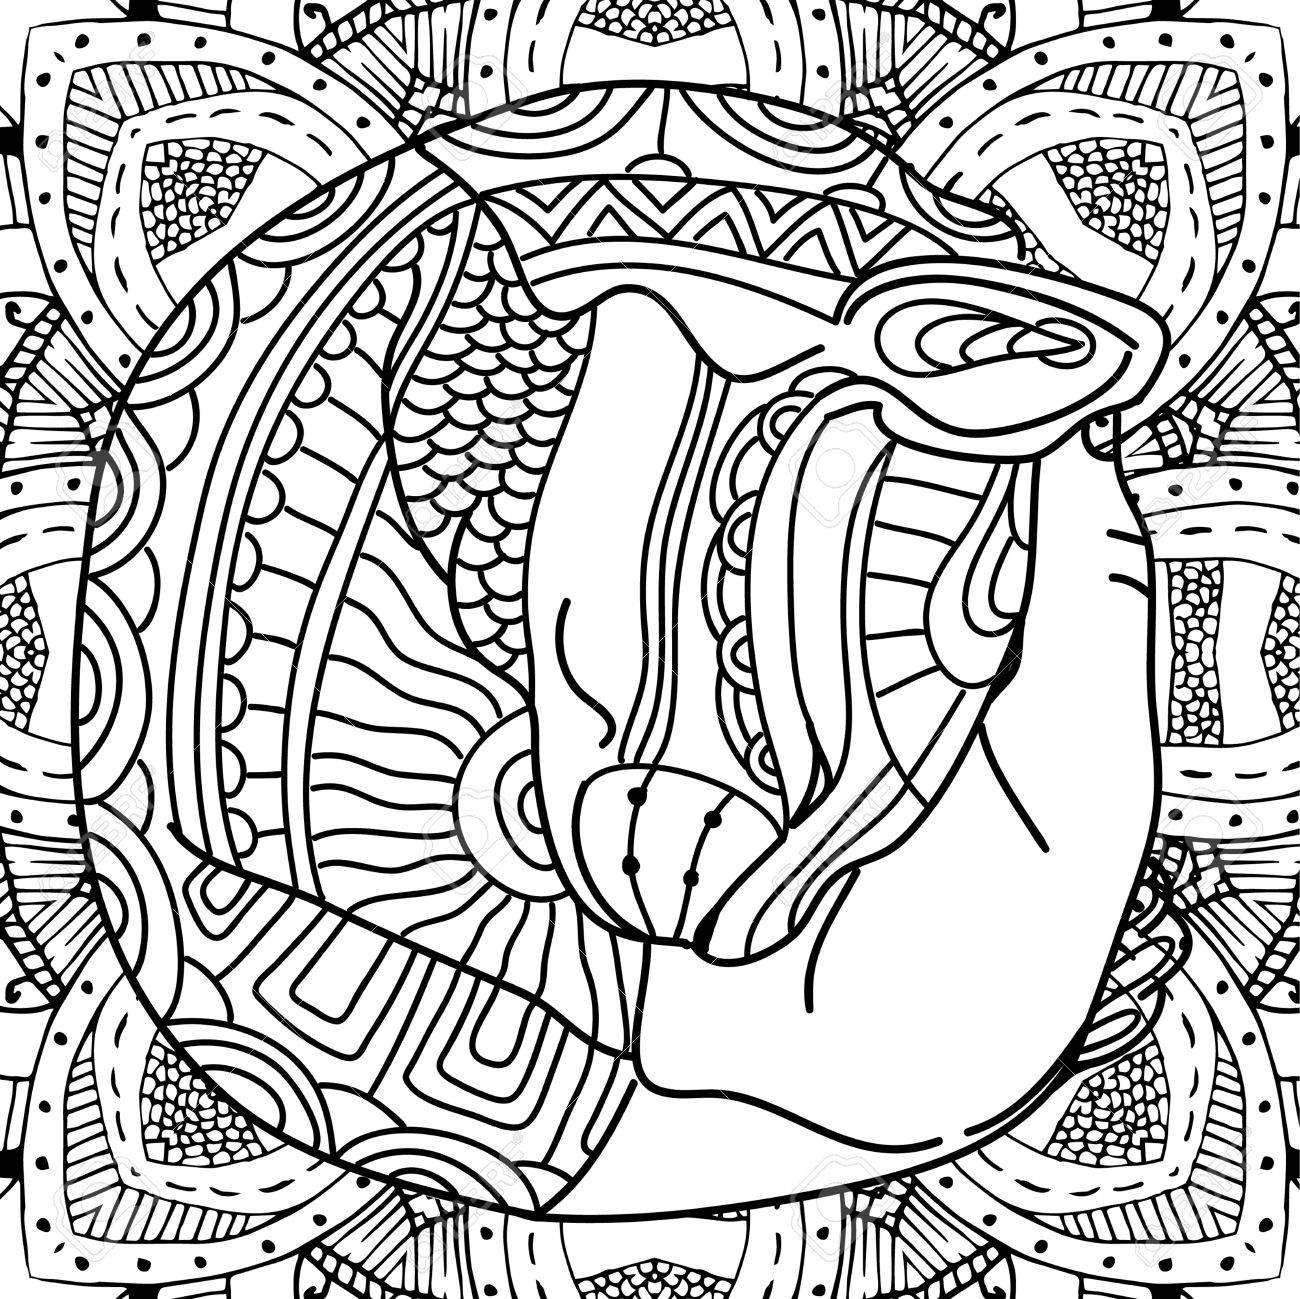 The Cat In The Arms Coloring Book Page Animal With Patterns Royalty Free Cliparts Vectors And Stock Illustration Image 64943823